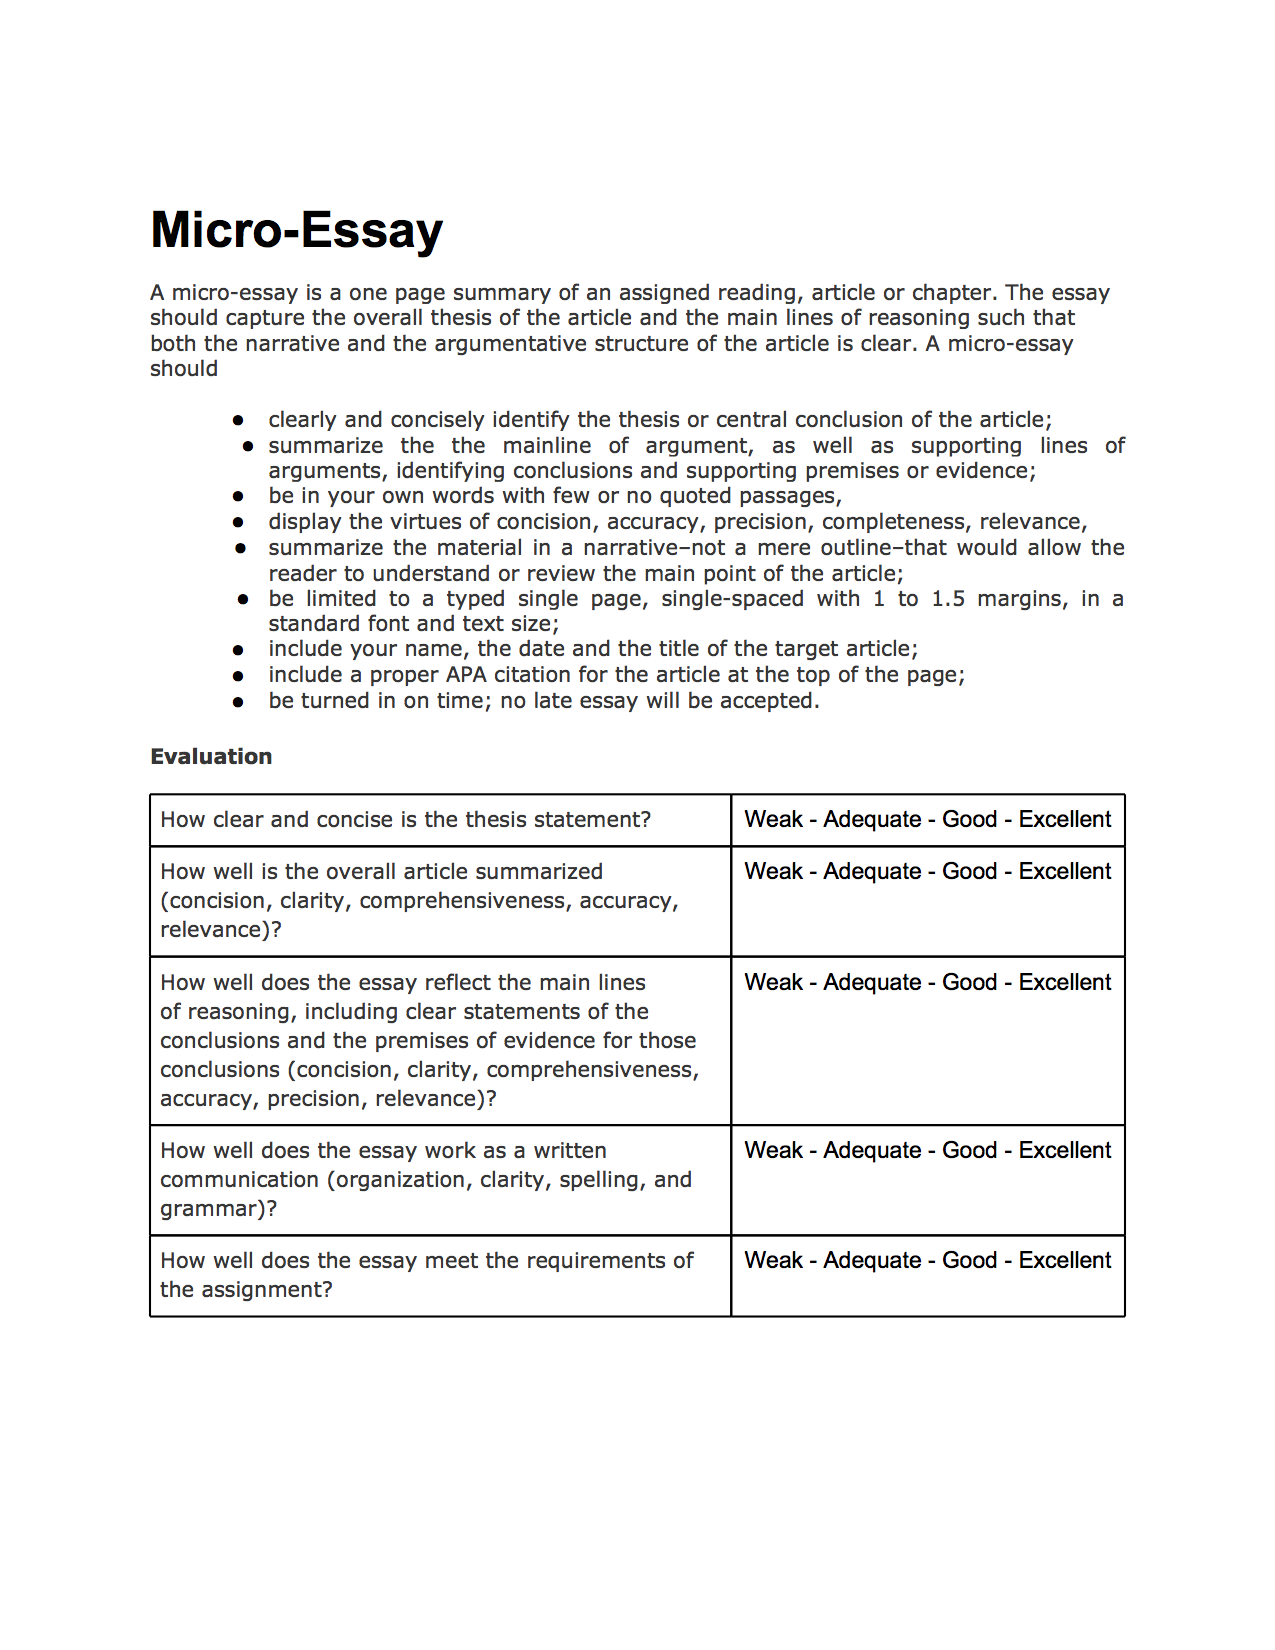 Persuasive essays with micro stories